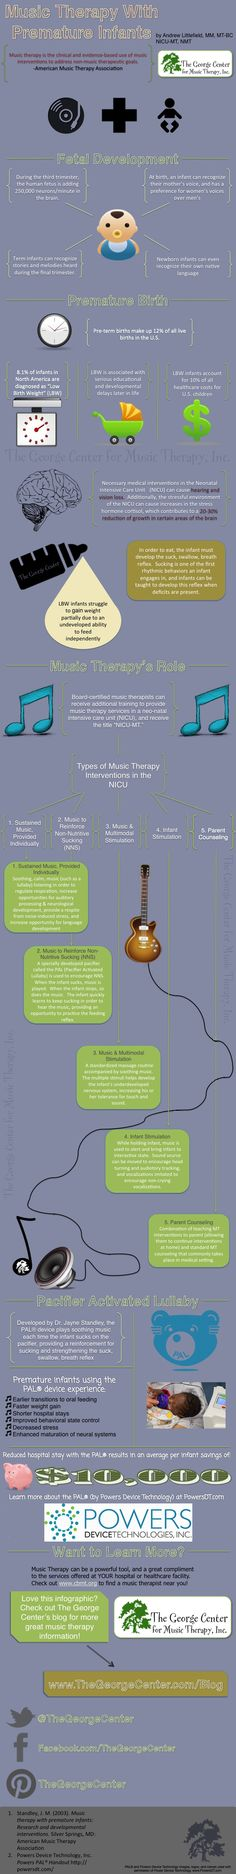 Infographic illustrating the value and use of music therapy in the NICU with premature infants - a valuable and powerful tool for these young patients.